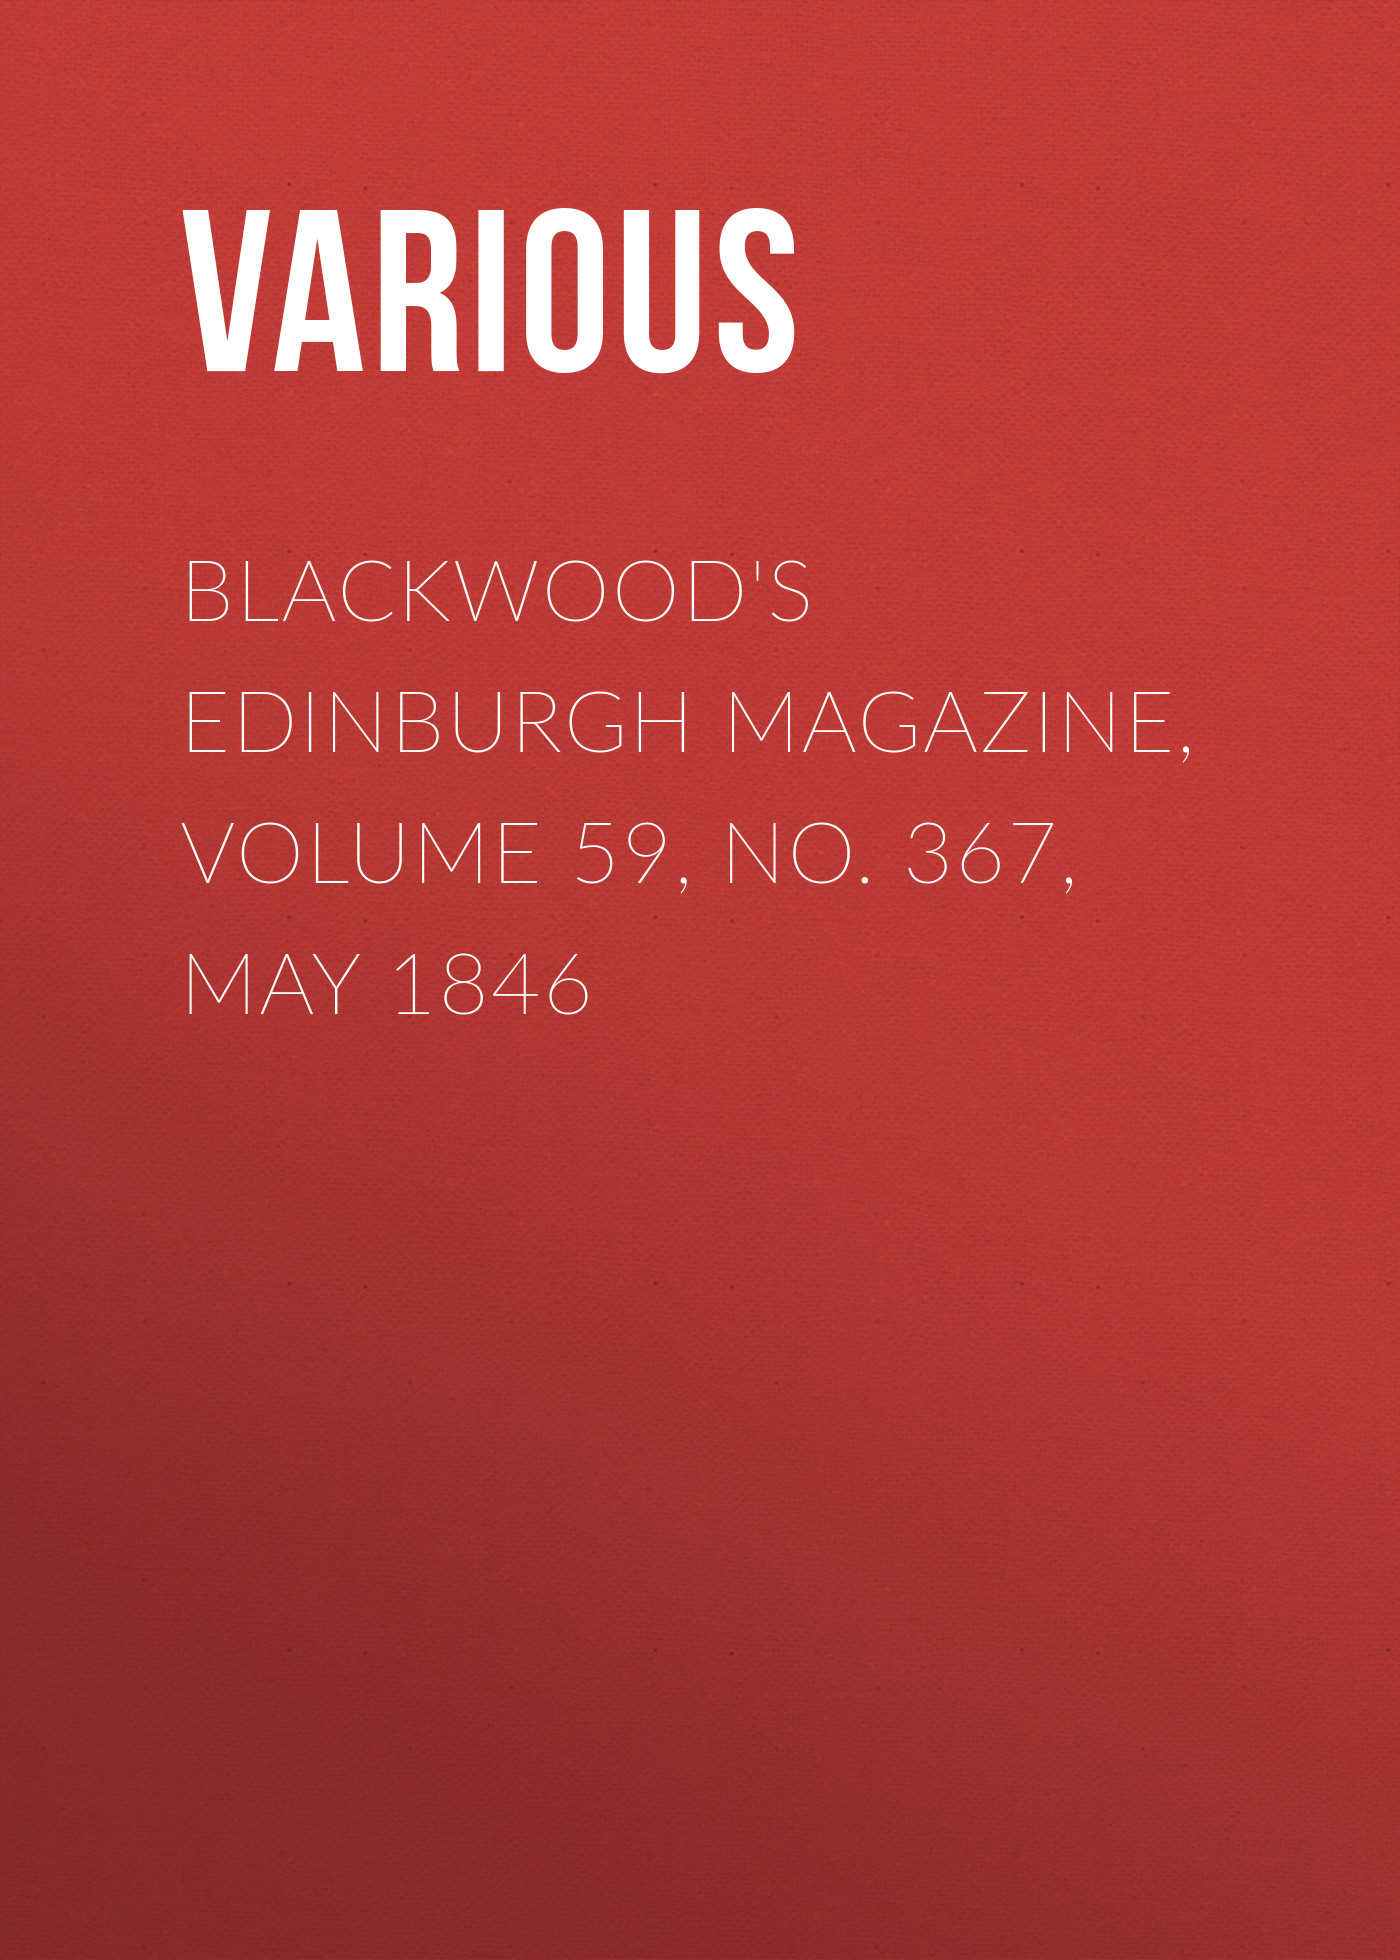 Various Blackwood's Edinburgh Magazine, Volume 59, No. 367, May 1846 цена